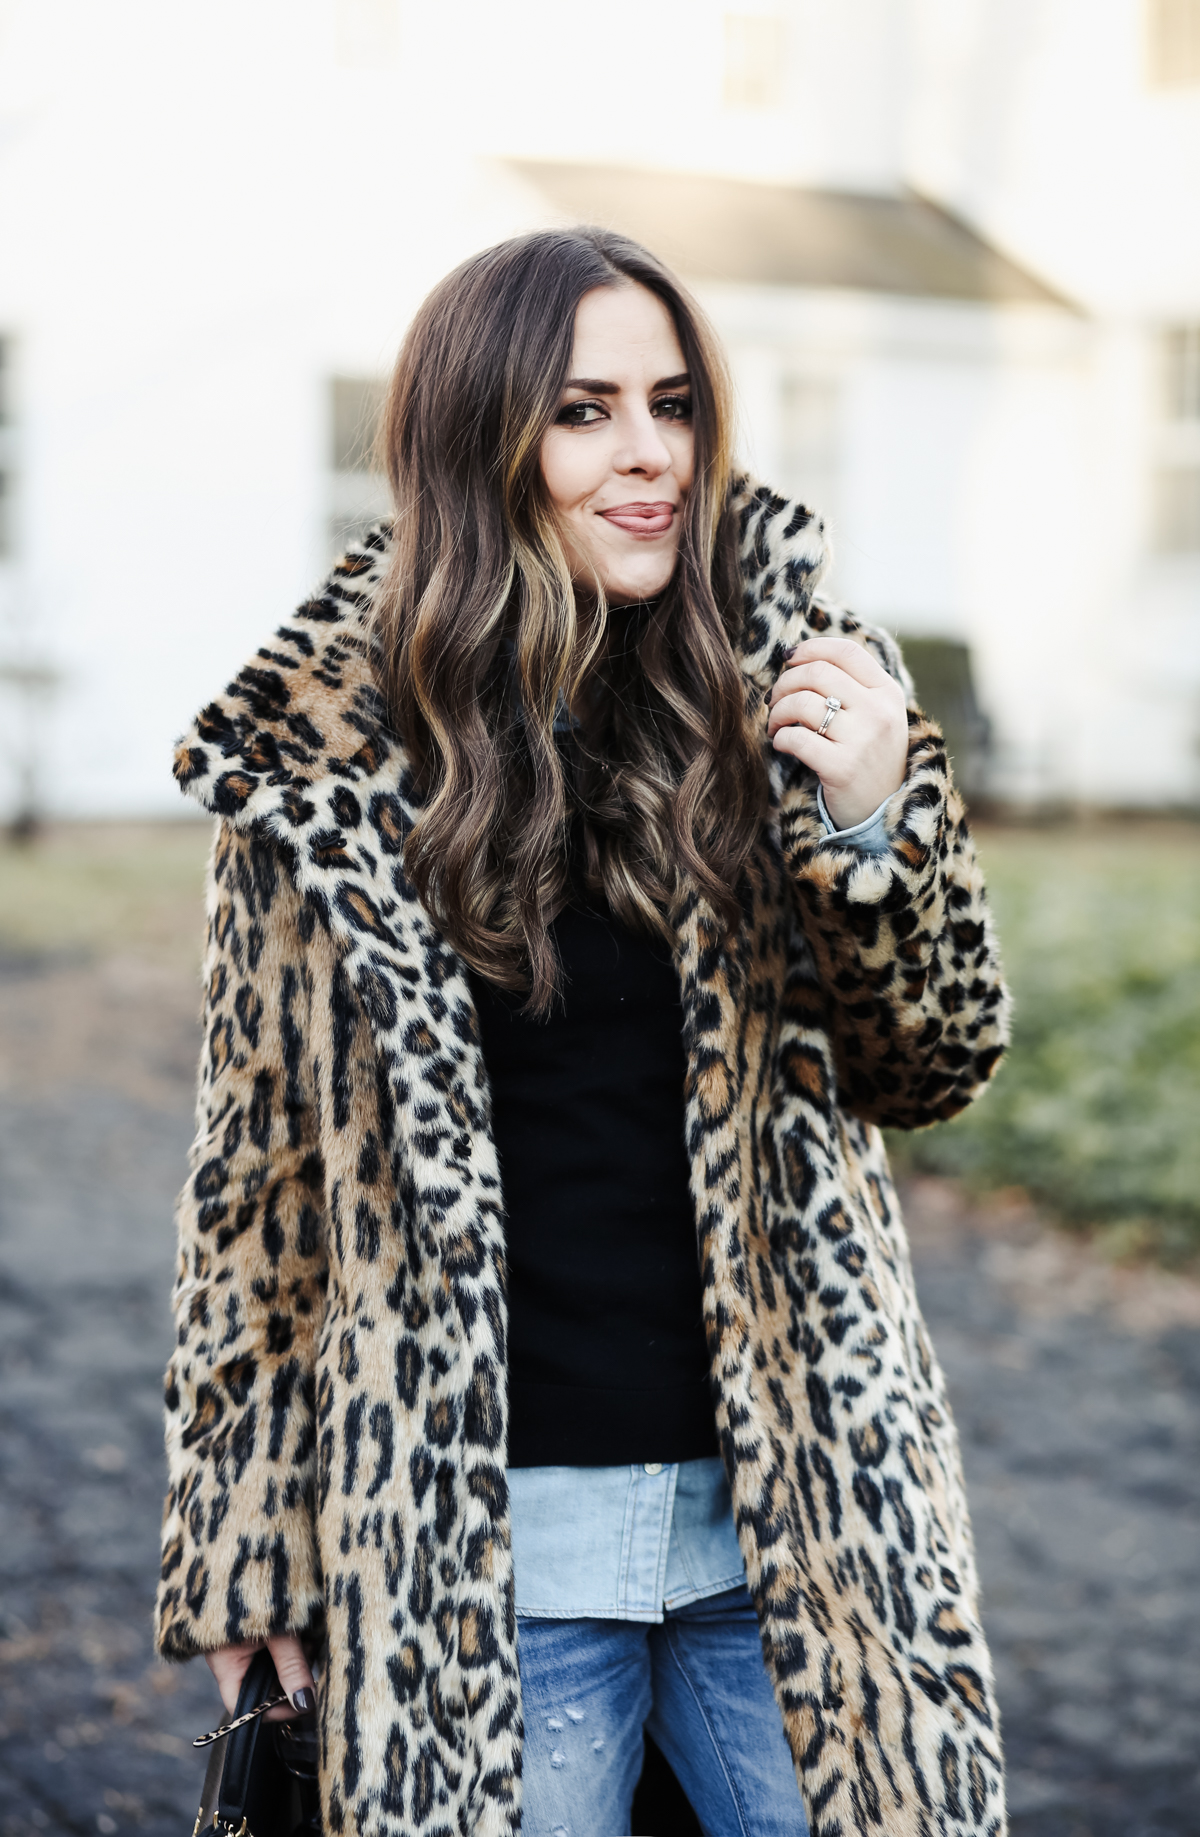 leopard coat outfit for winter denim and black-4 - dress cori lynn 2c1be6bfe6e9